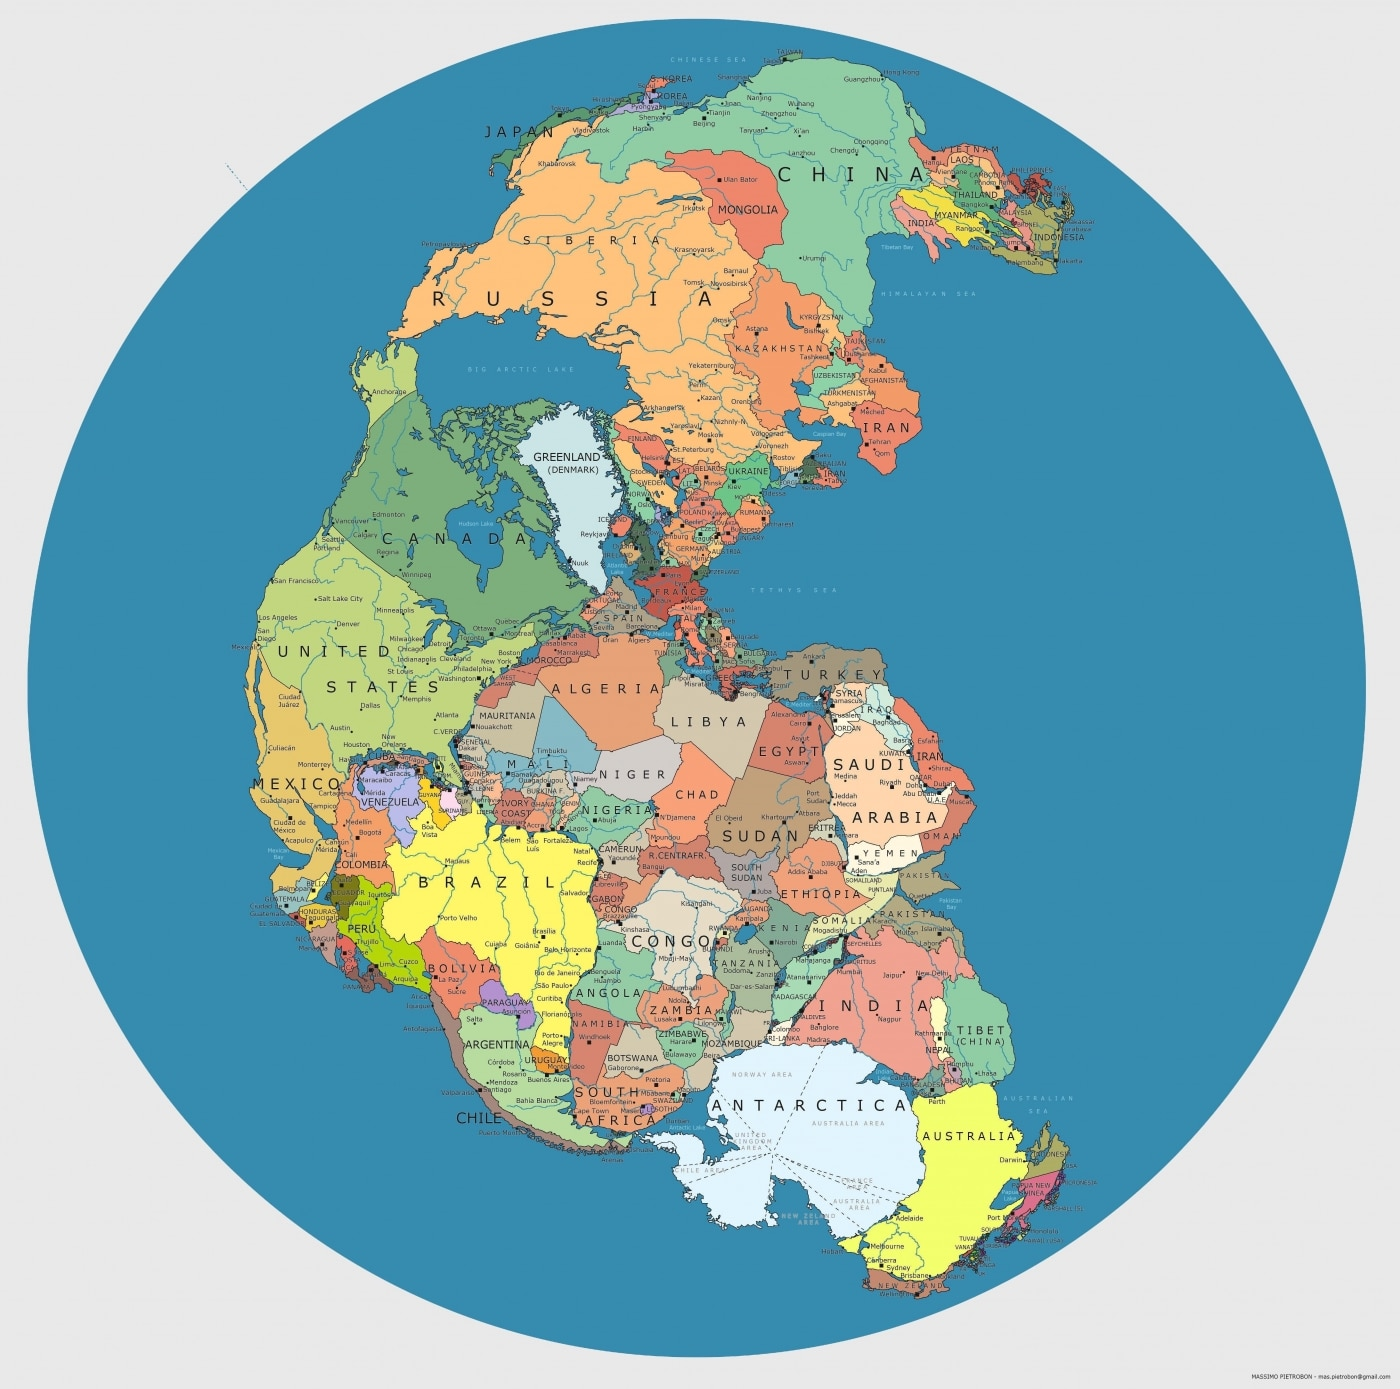 Modern Pangea Map Showing Today\'s Countries on the Supercontinent